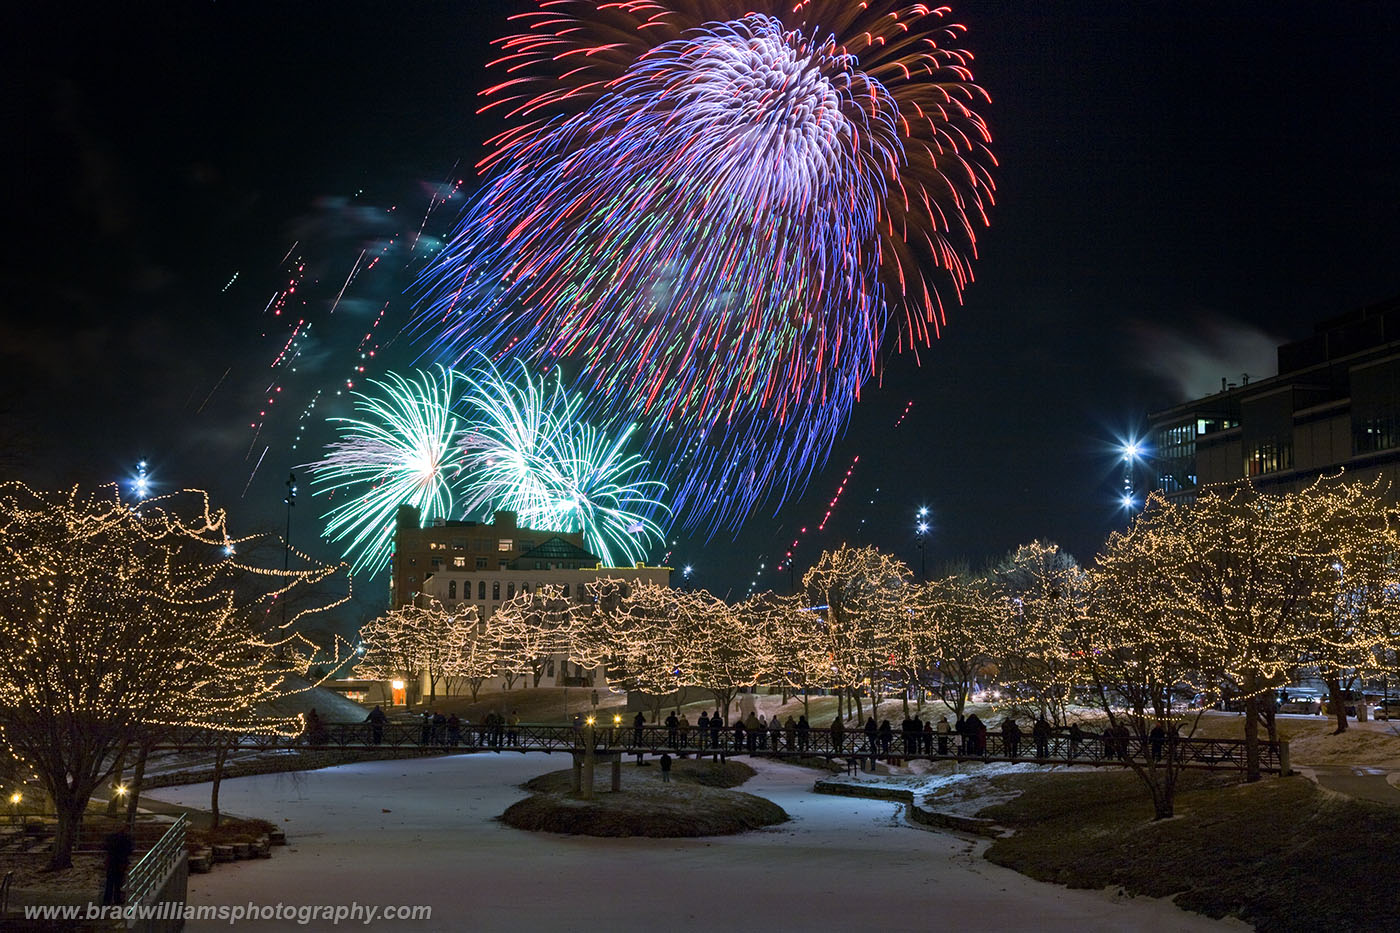 2010, New Years Eve, Gene Leahy Mall, Omaha, Nebraska, photo